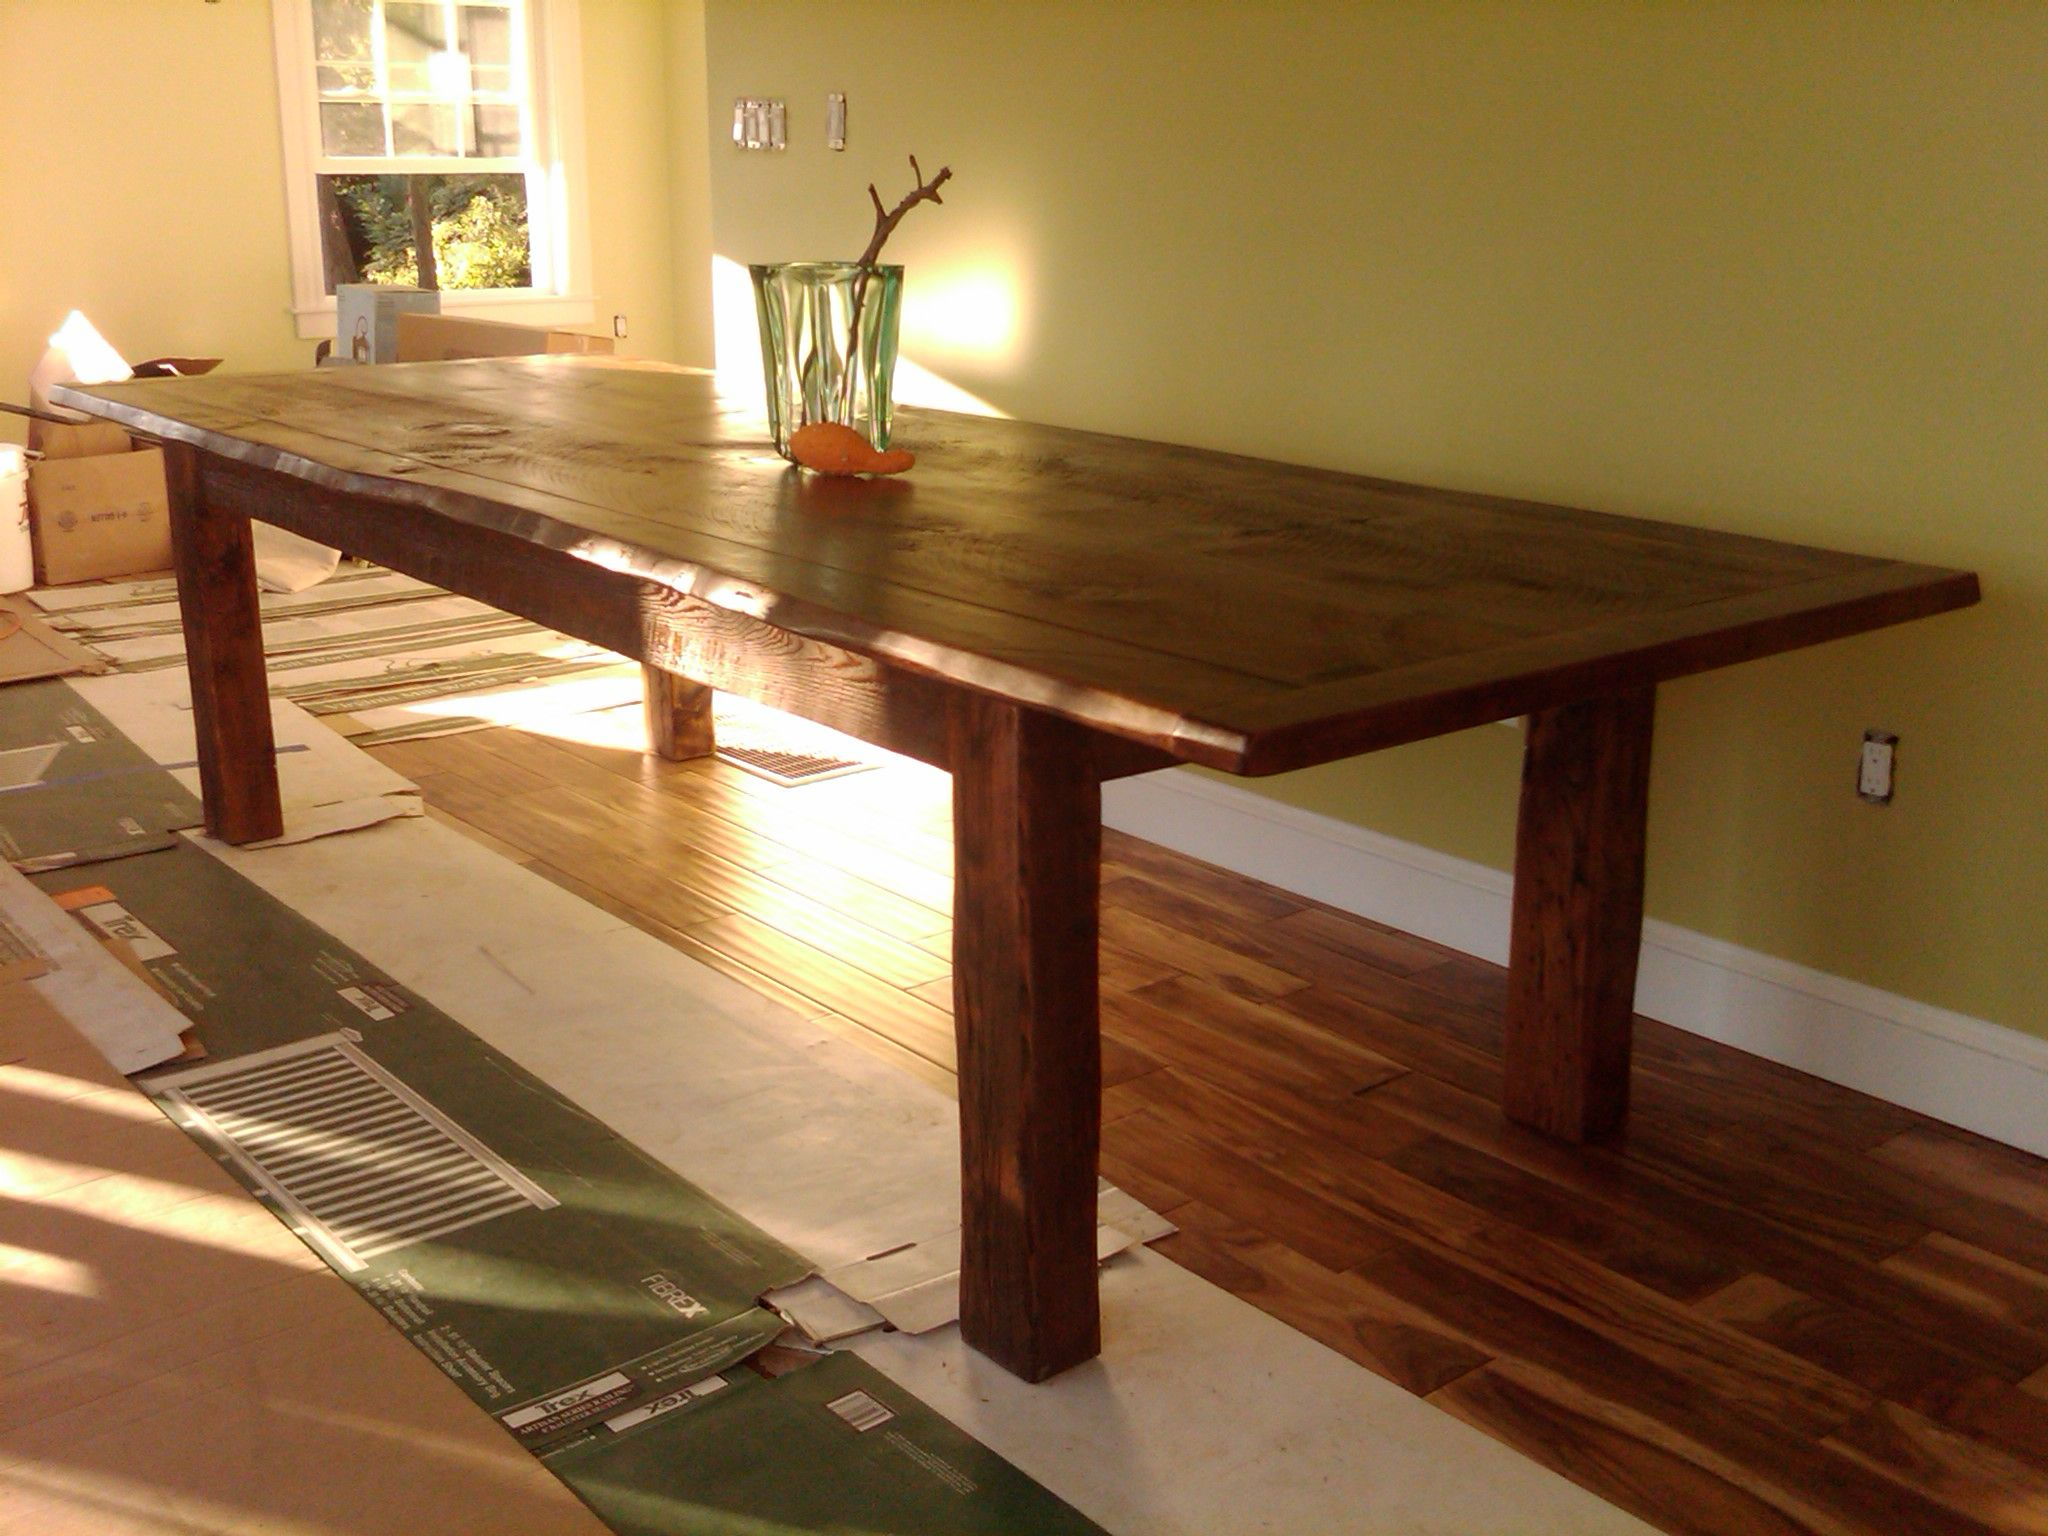 This Big Dining Table Has All The Right Things Going For It The